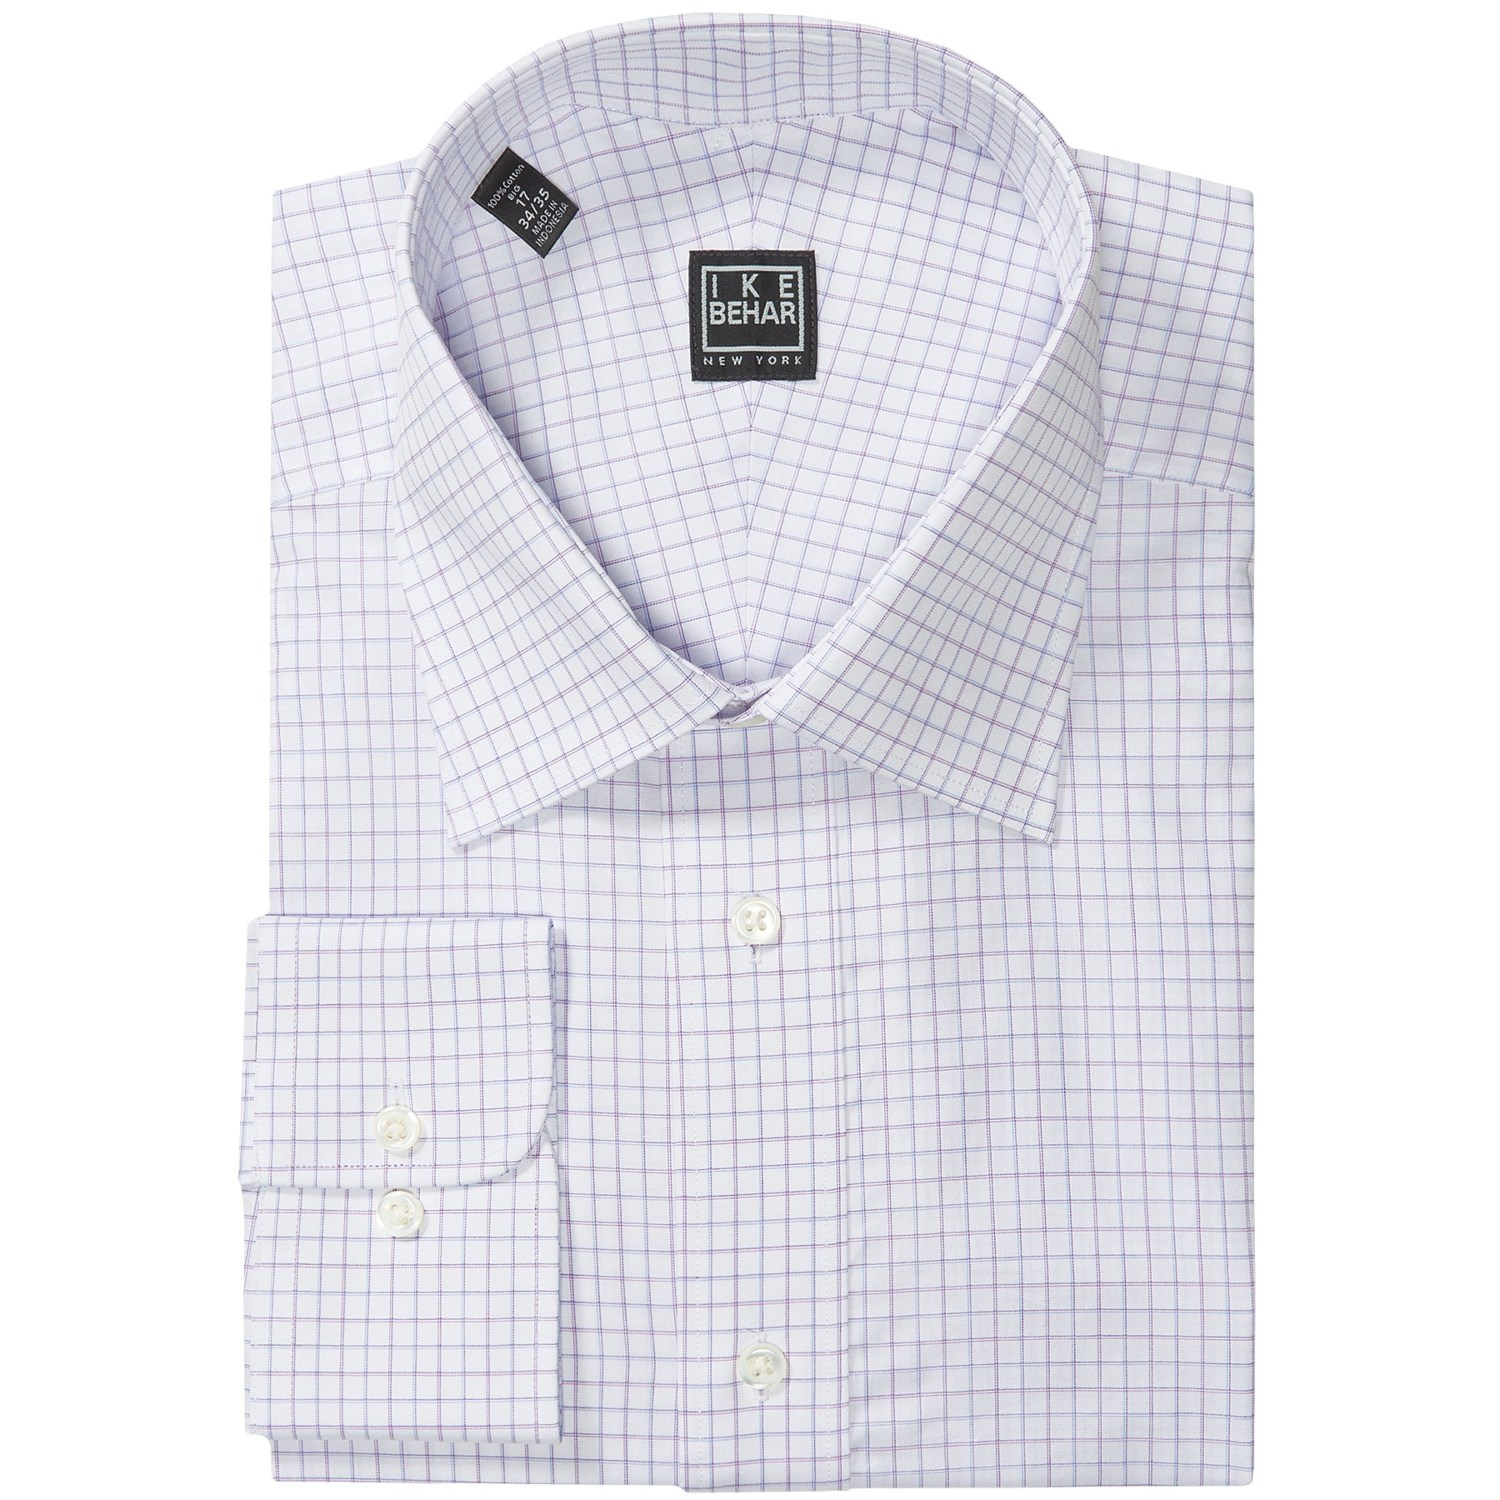 Ike behar black label check dress shirt long sleeve for for Design your own t shirt big and tall